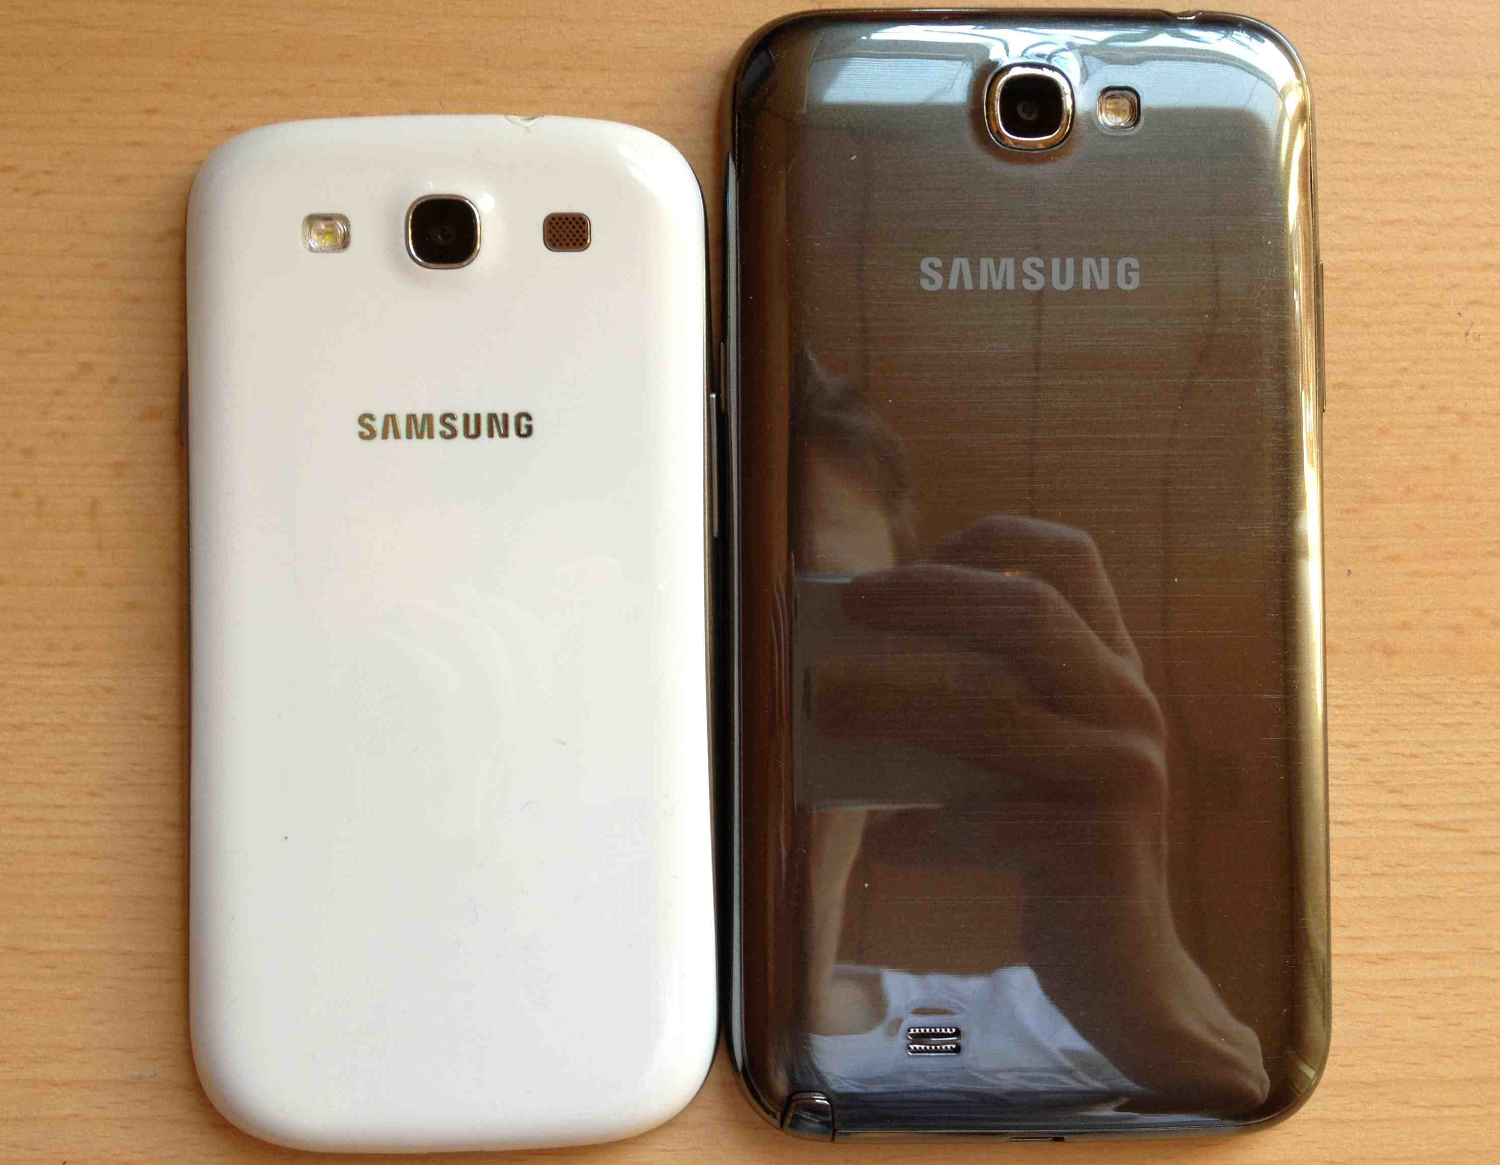 zwei boliden im vergleich galaxy s3 vs galaxy note 2 all about samsung. Black Bedroom Furniture Sets. Home Design Ideas